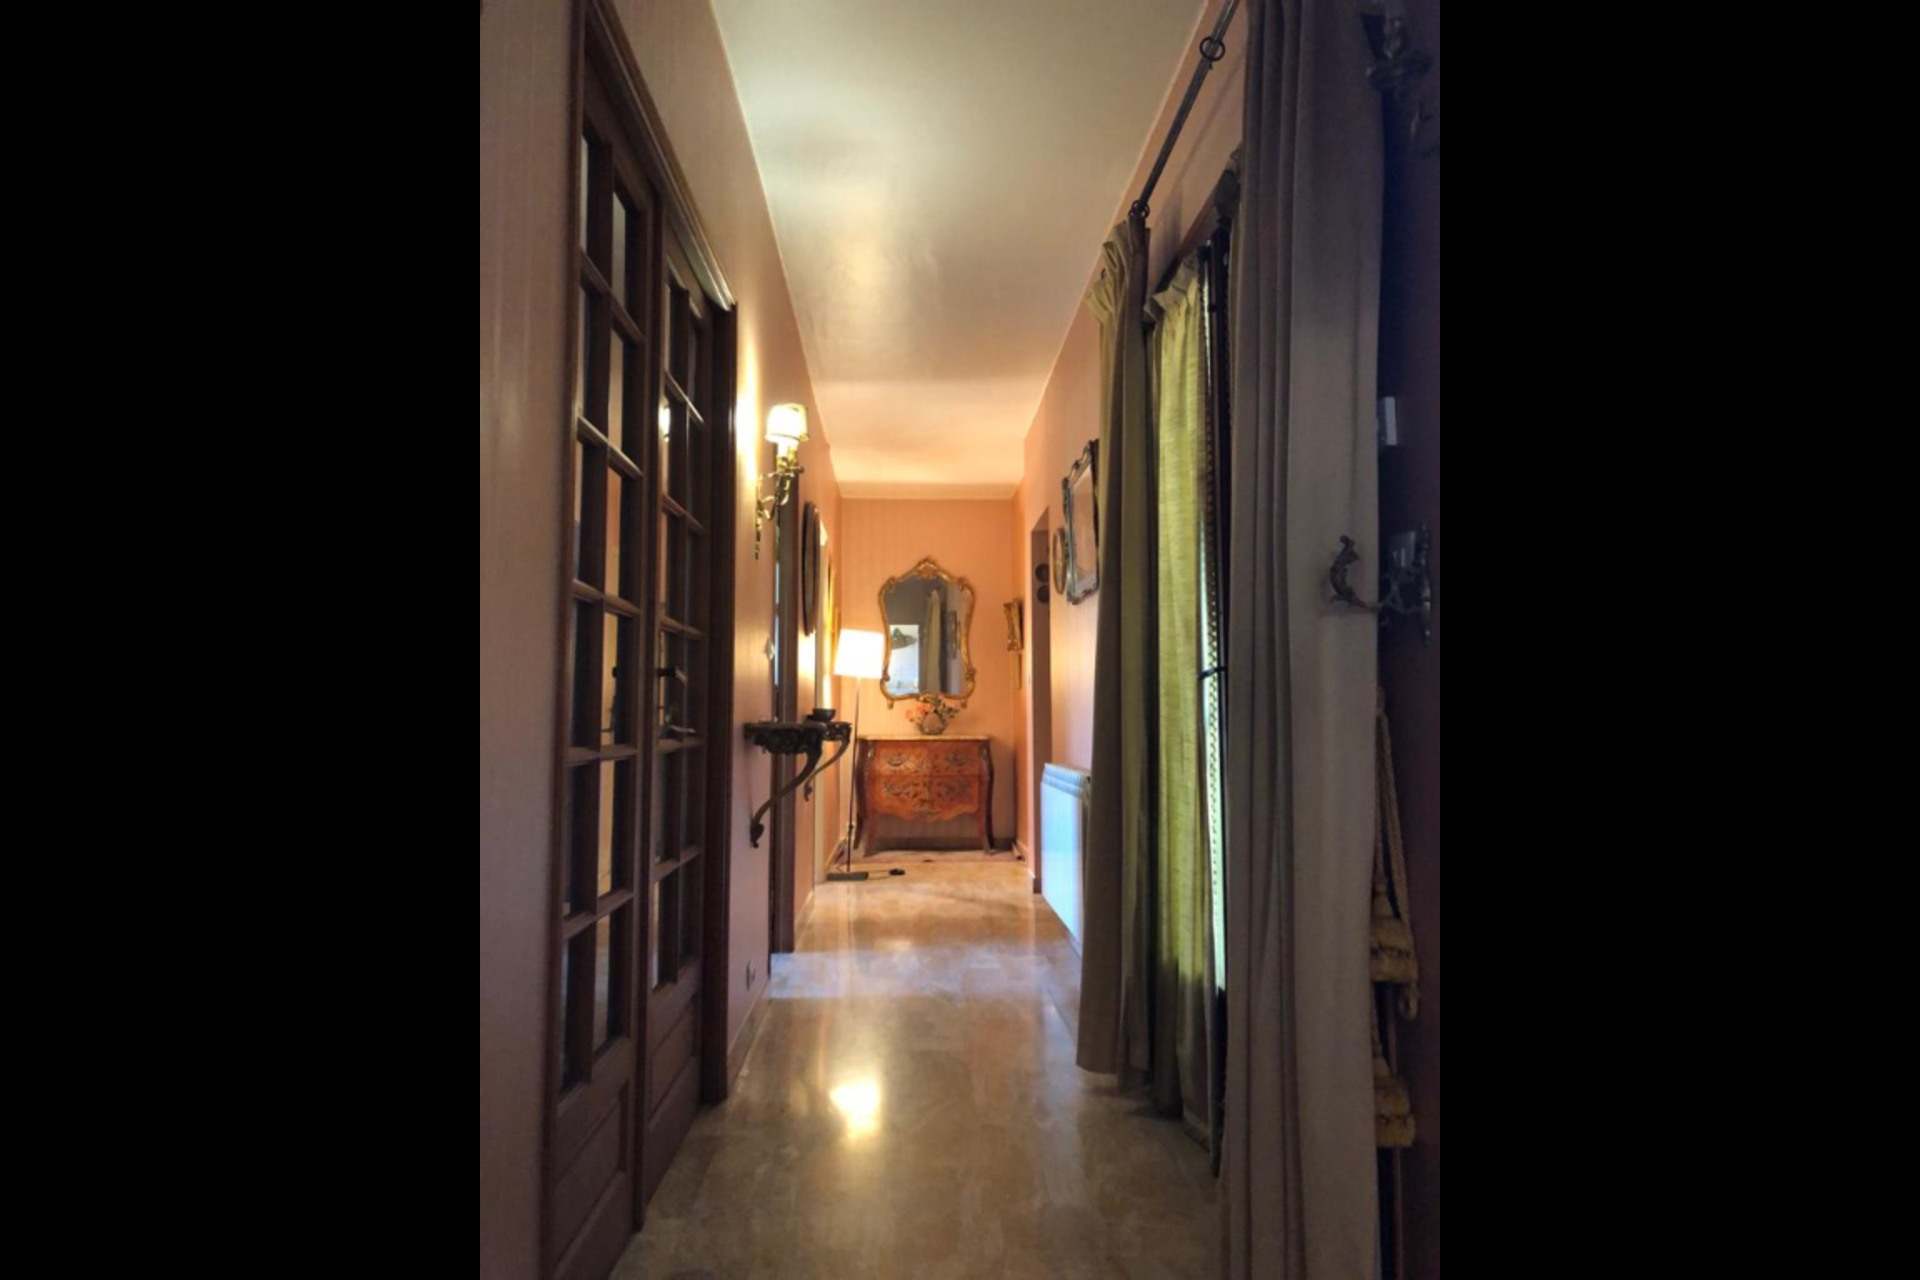 image 6 - House For sale feucherolles - 8 rooms